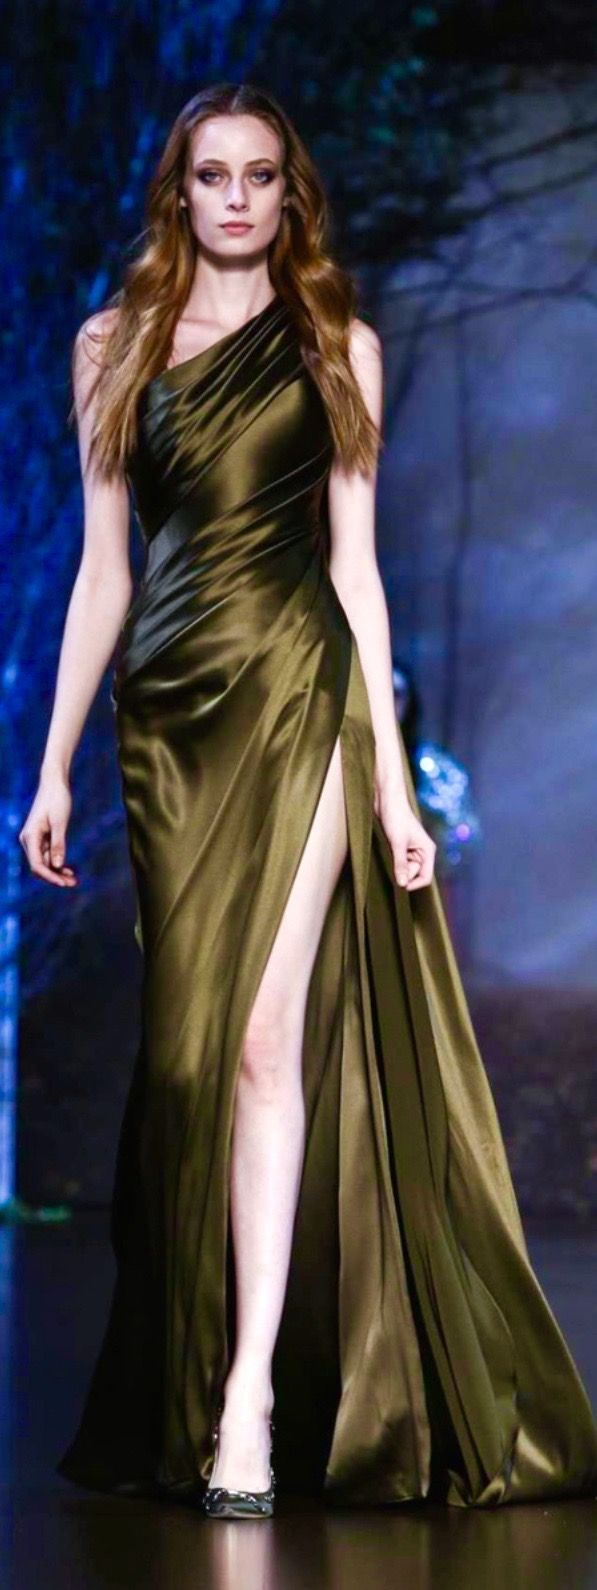 best images about moda on pinterest resorts christian dior